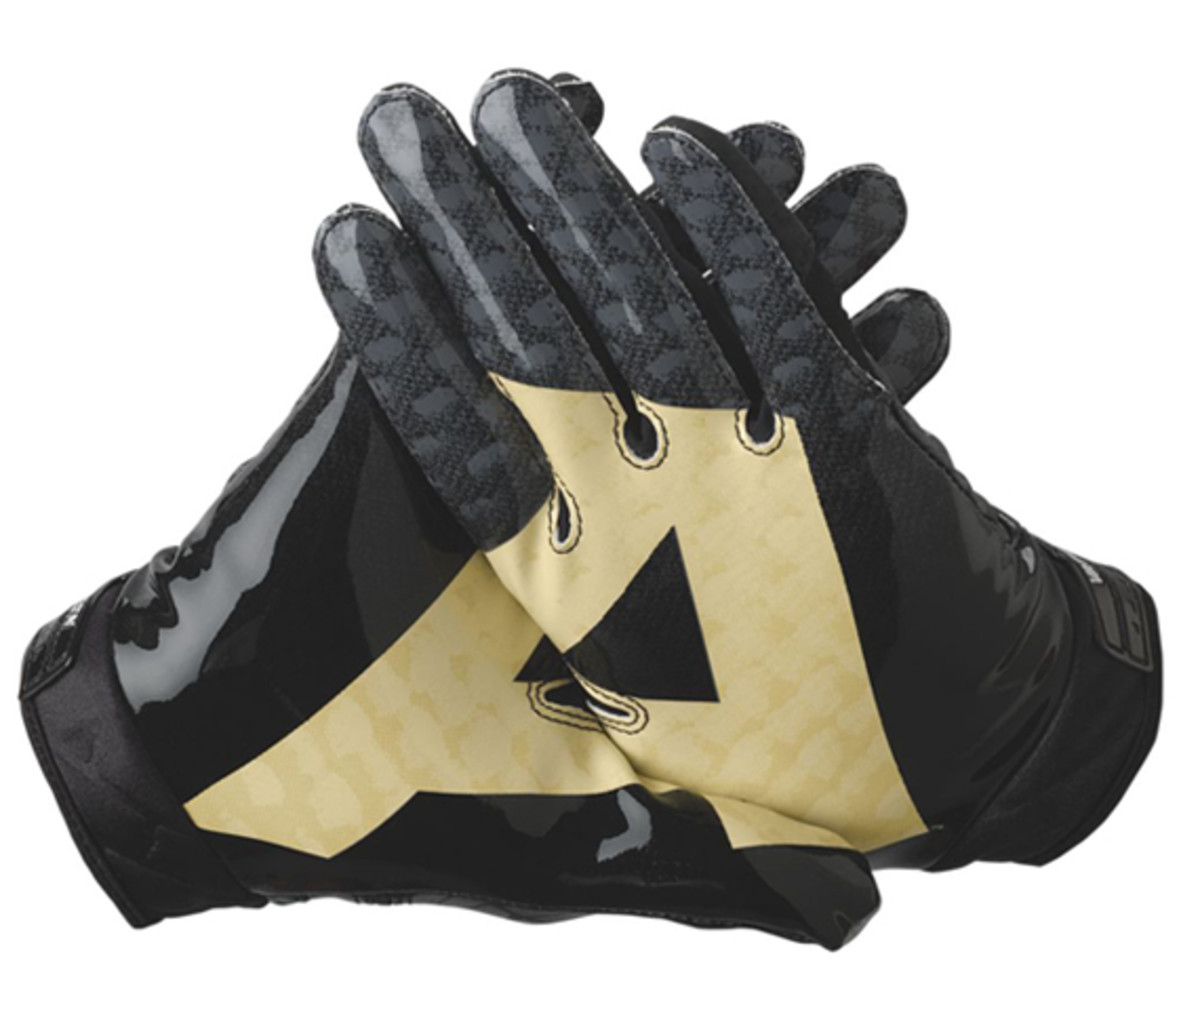 Nike-College-Rivalry-Vapor-Jet-Football-Gloves-01